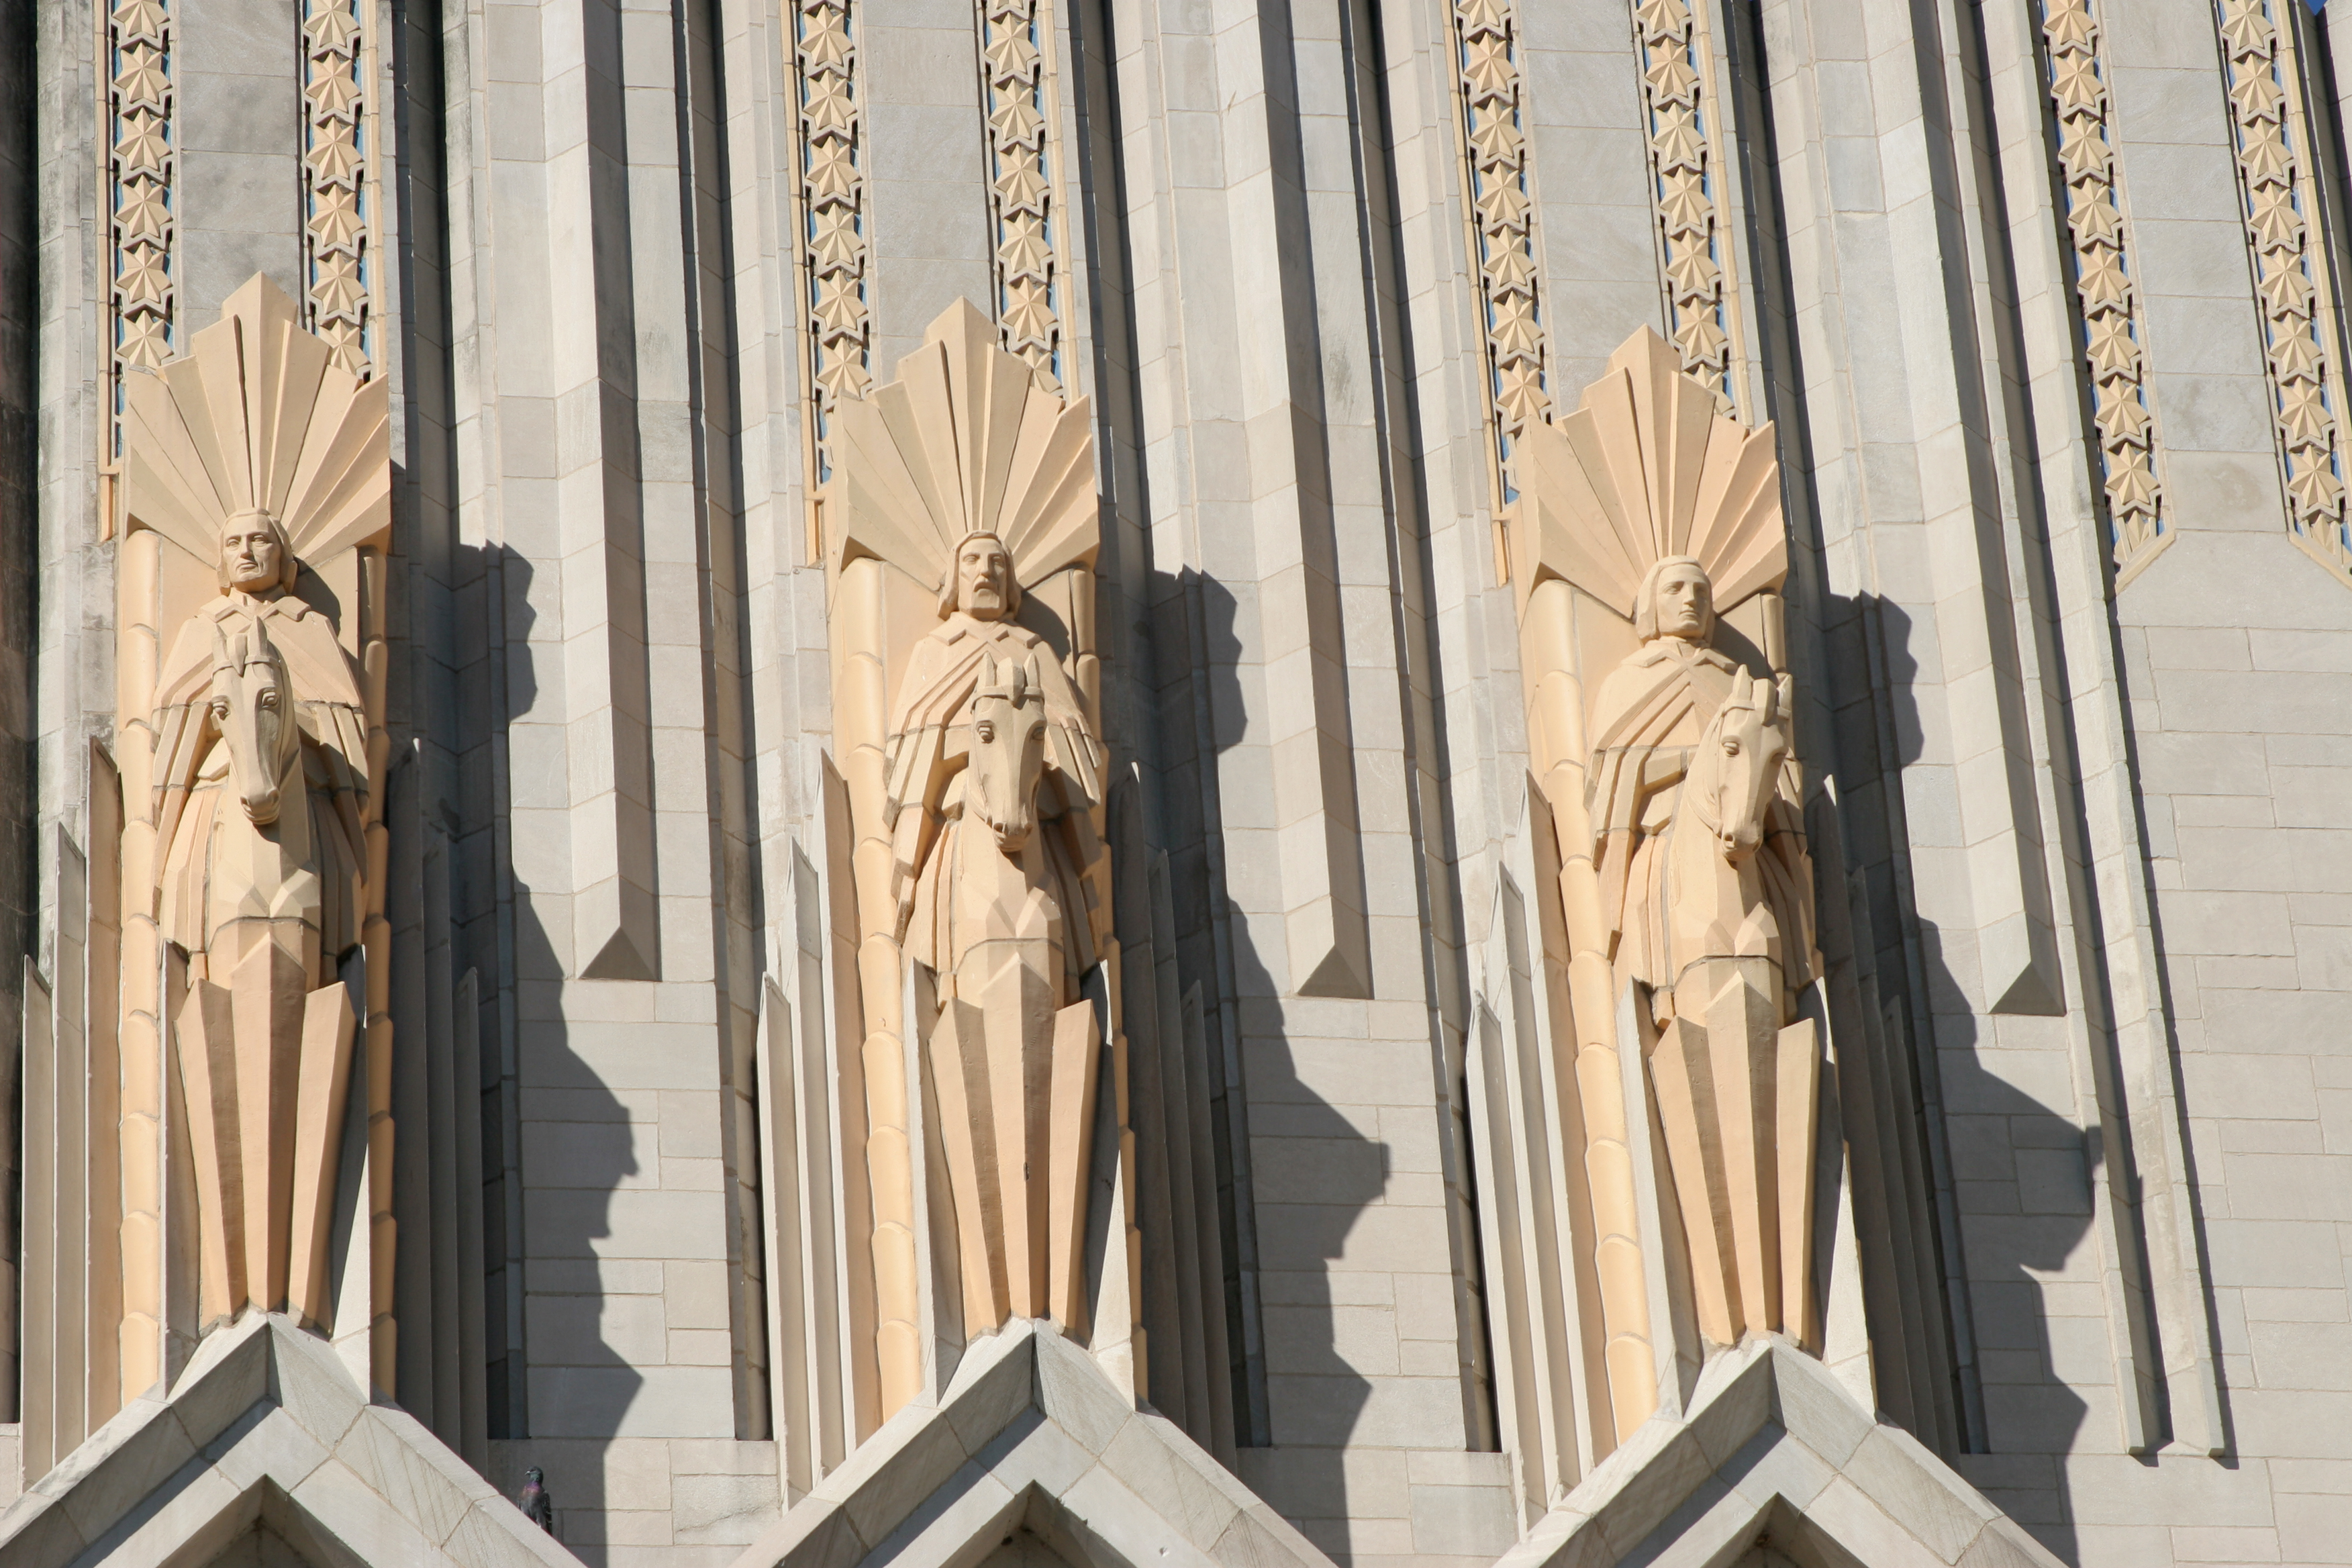 Ornate statues line the wall of a Methodist church.